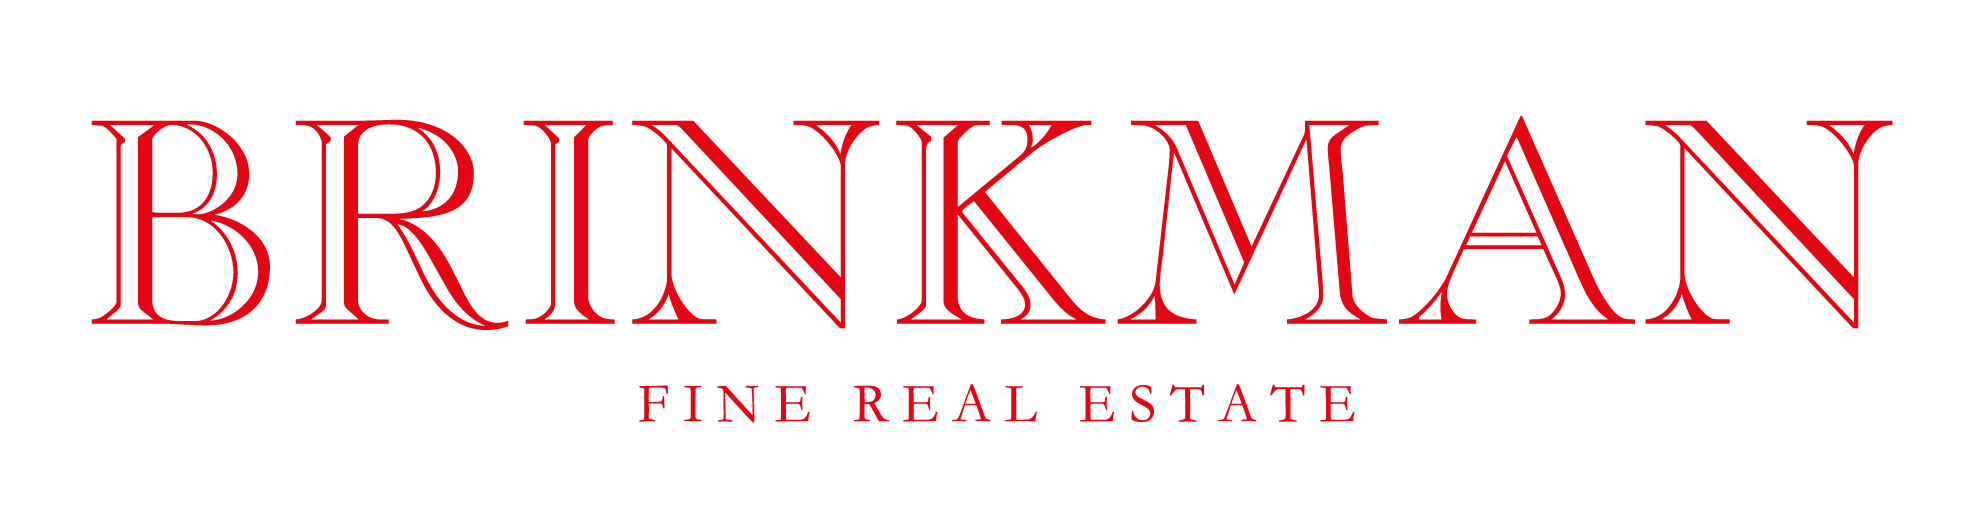 Brinkman Fine Real Estate